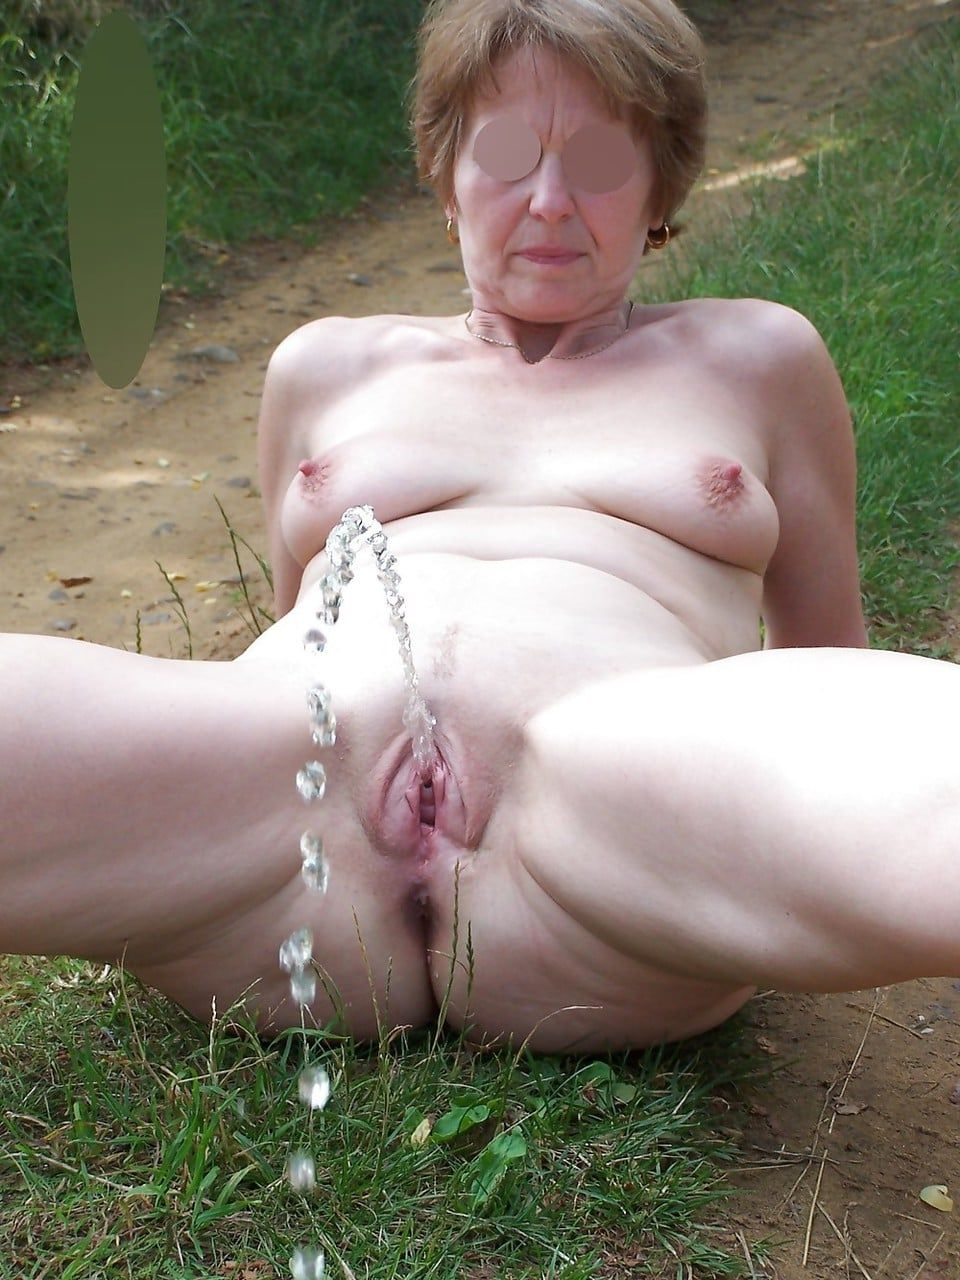 slave husband chastity pee drinking stories